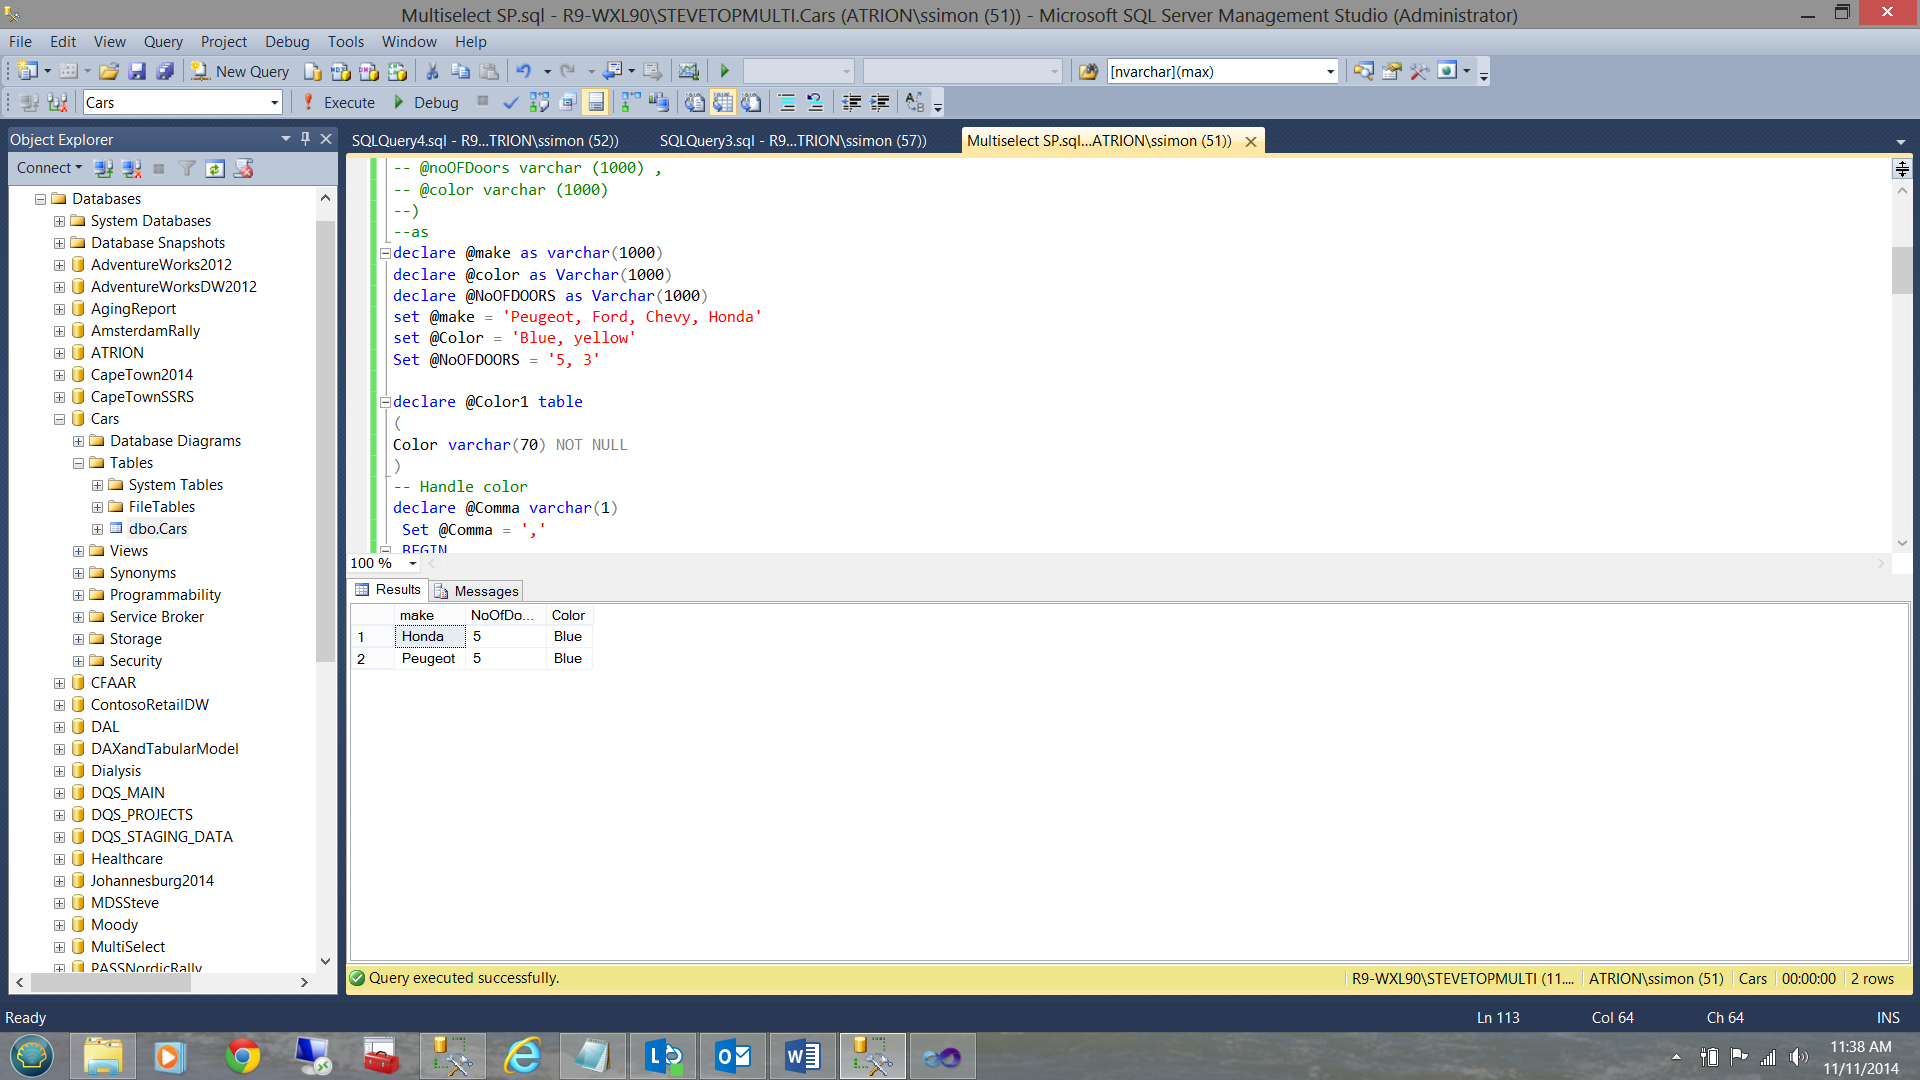 Finished stored procedure